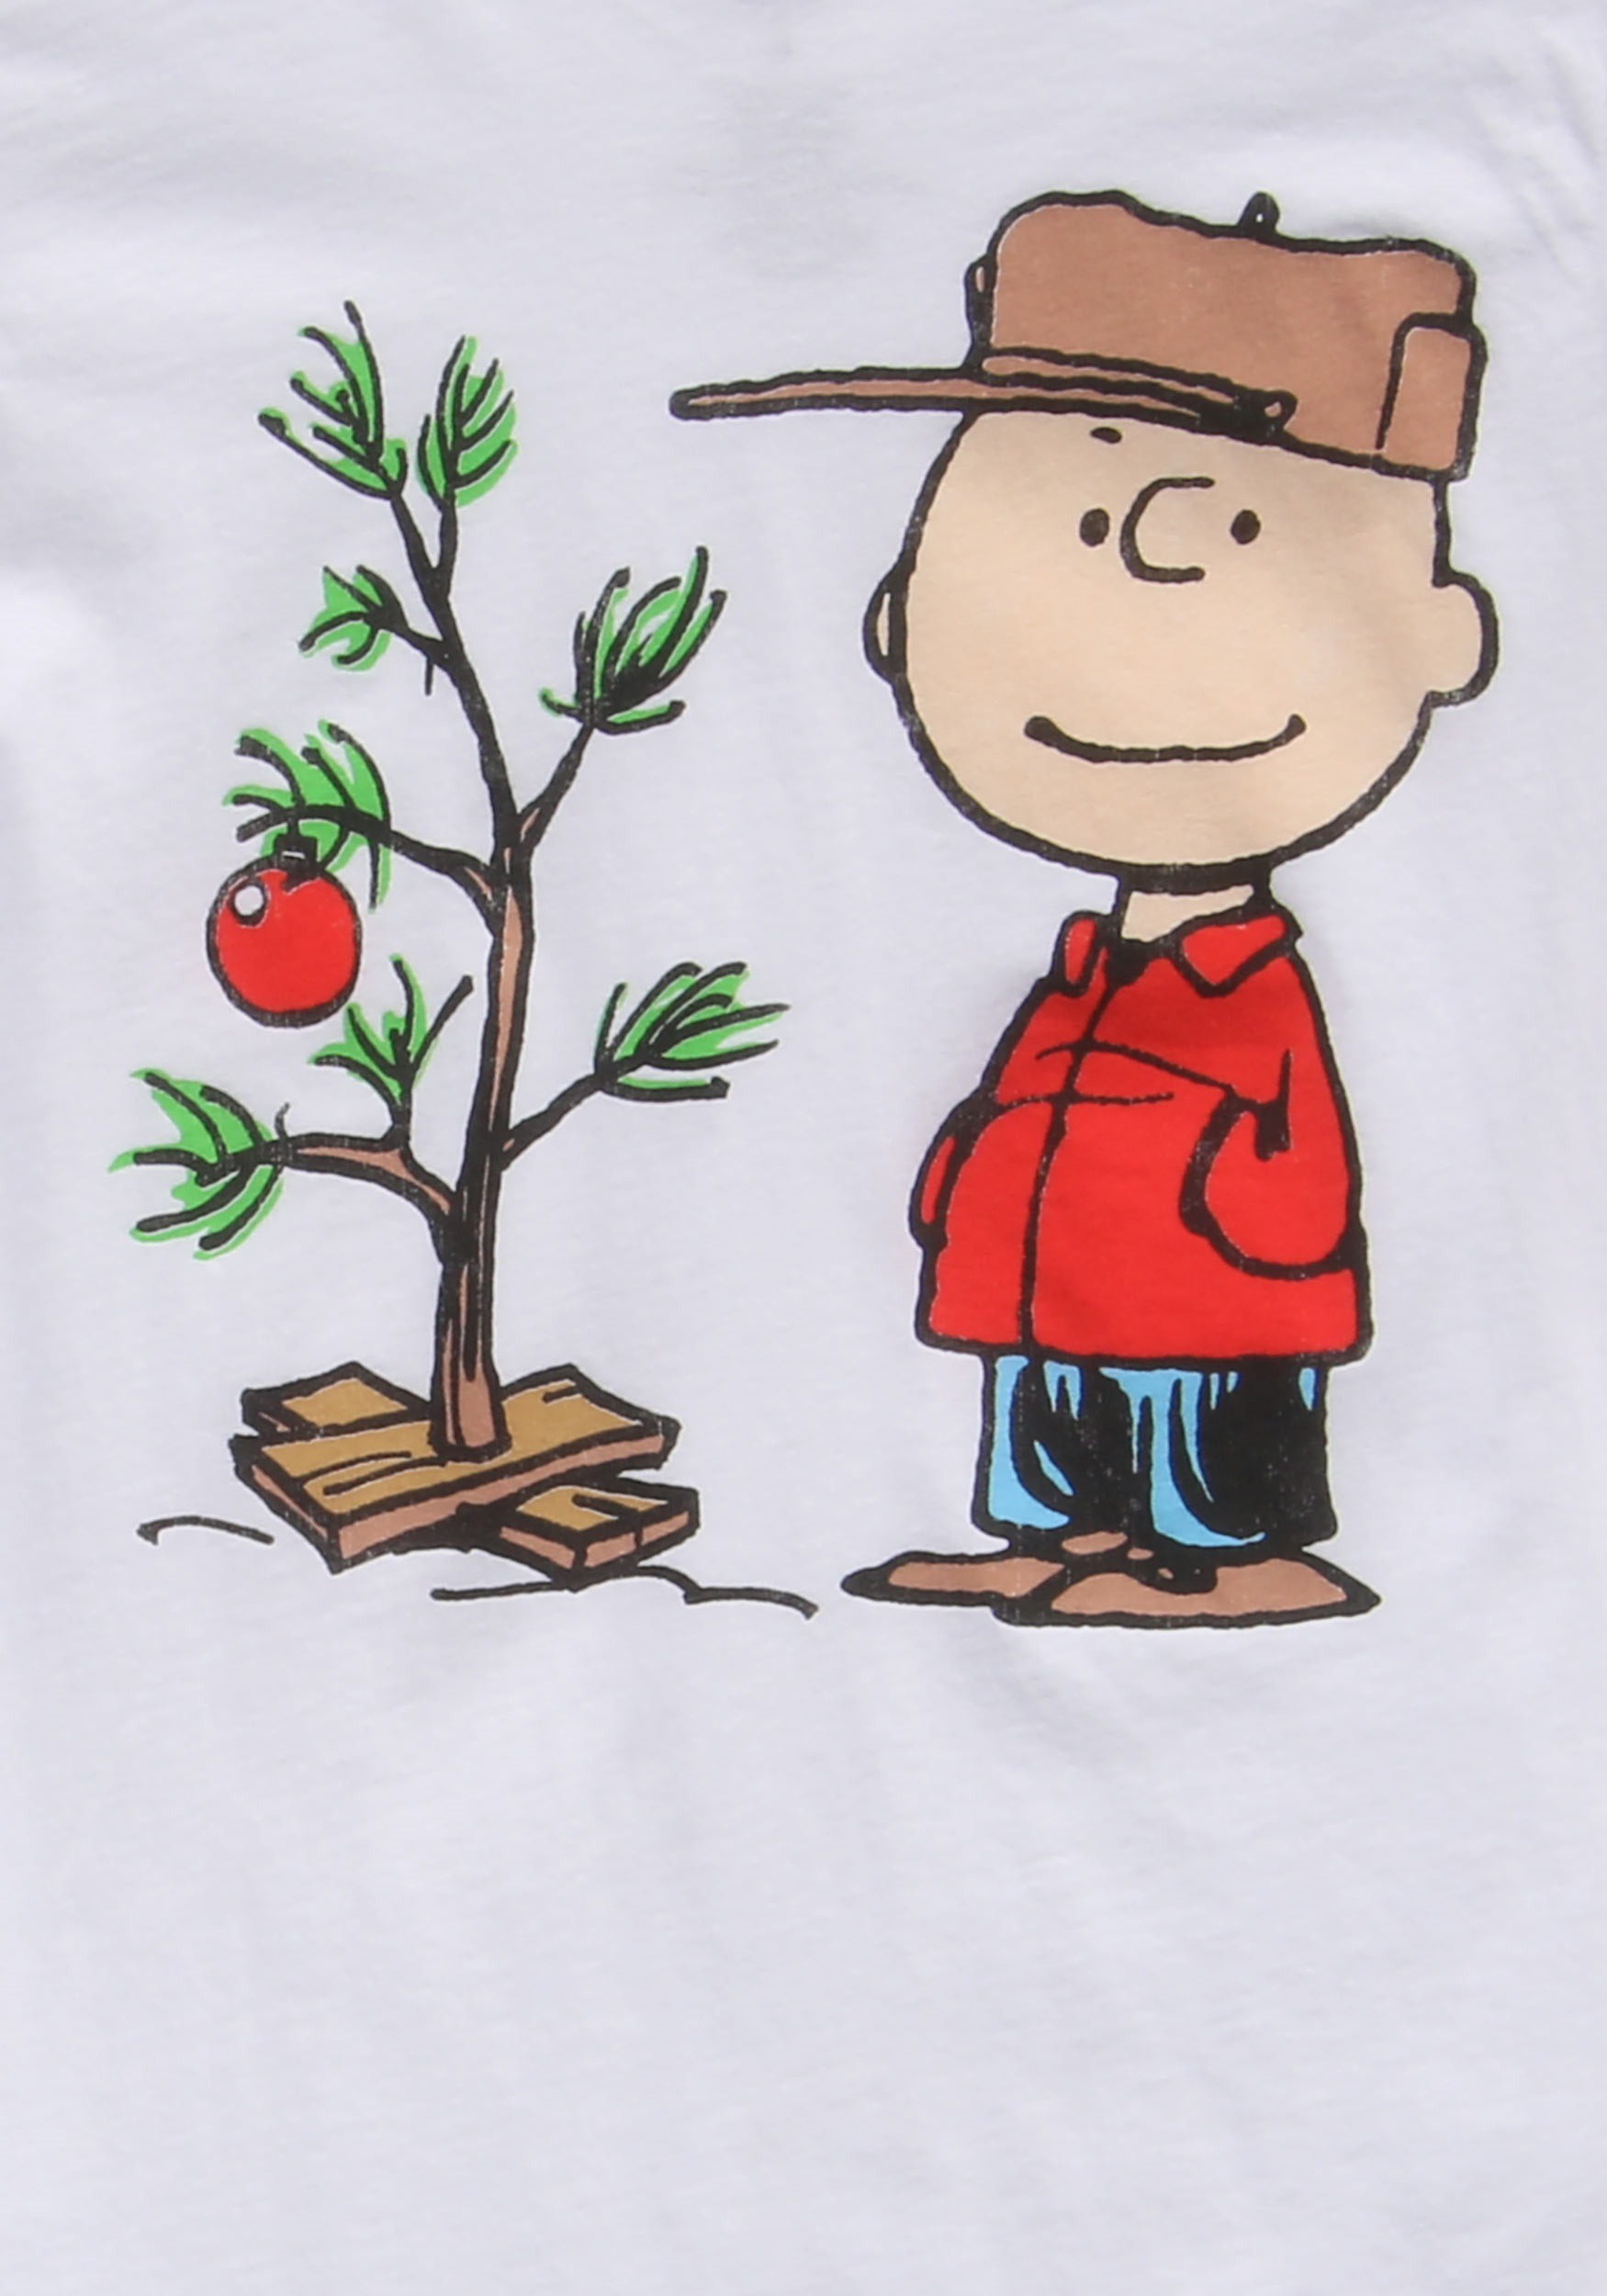 Juniors charlie brown christmas tree t shirt juniors charlie brown christmas tree t shirt1 voltagebd